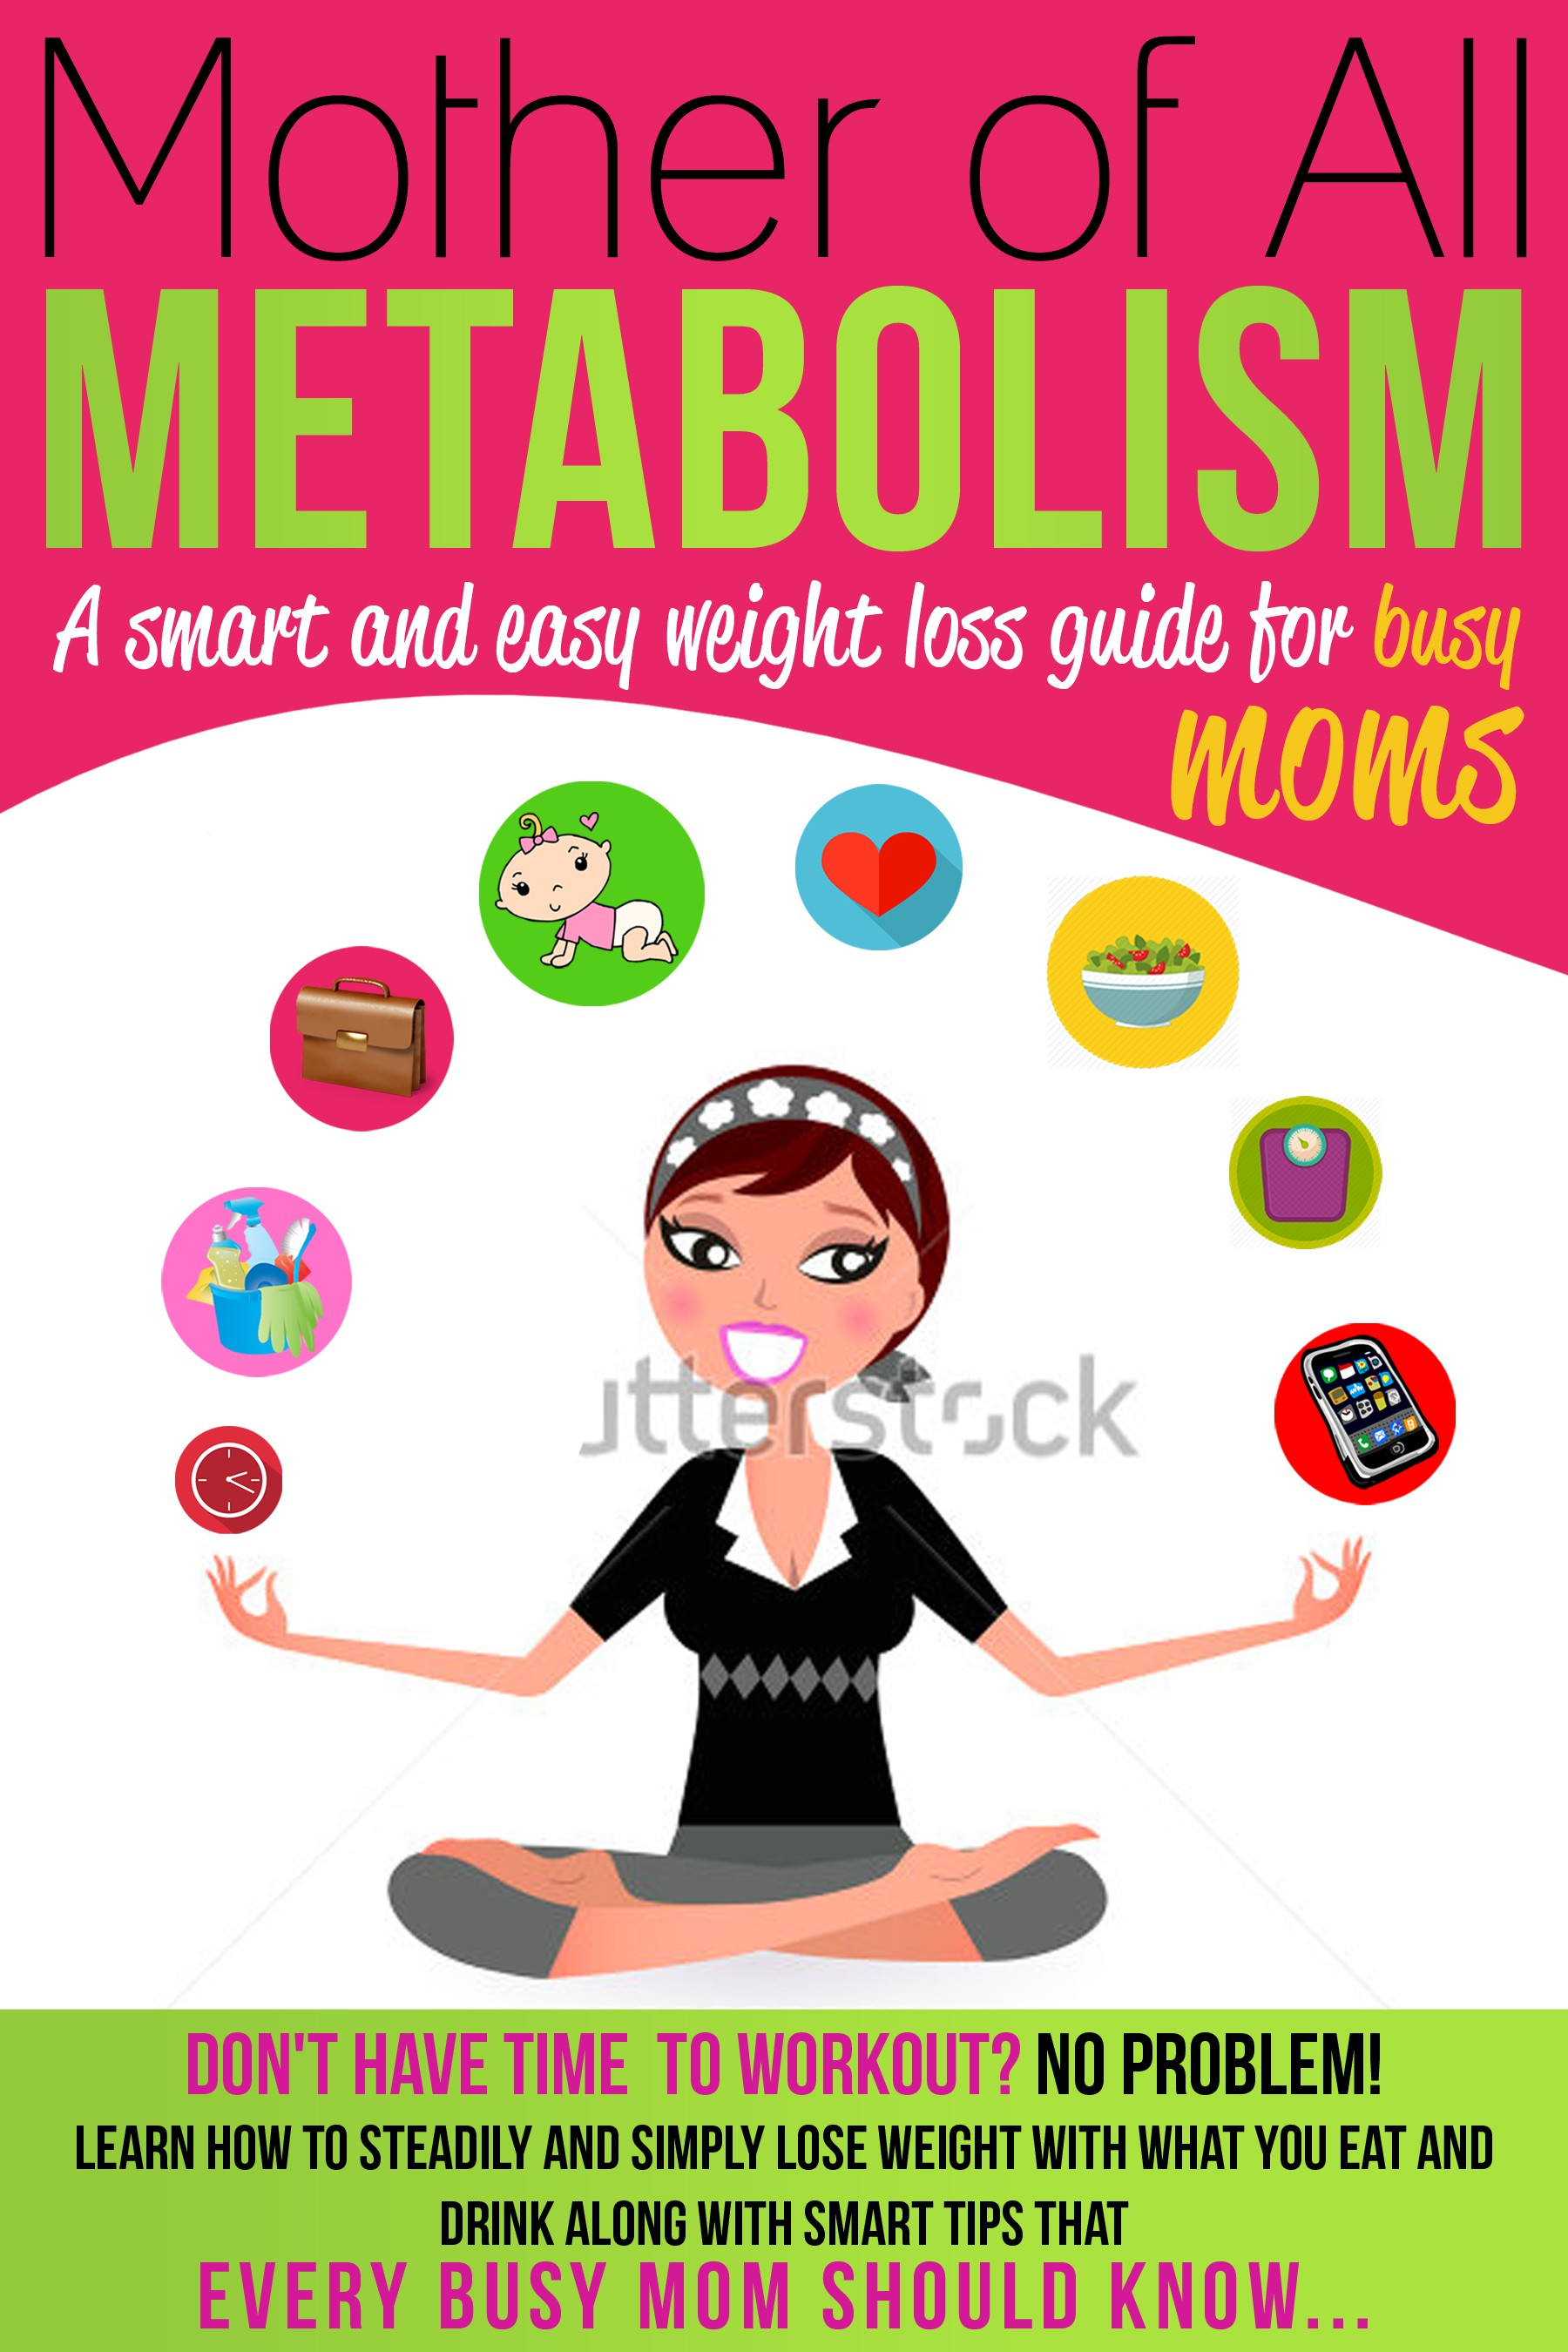 Create a fun and modern ebook cover for busy moms wanting to lose weight